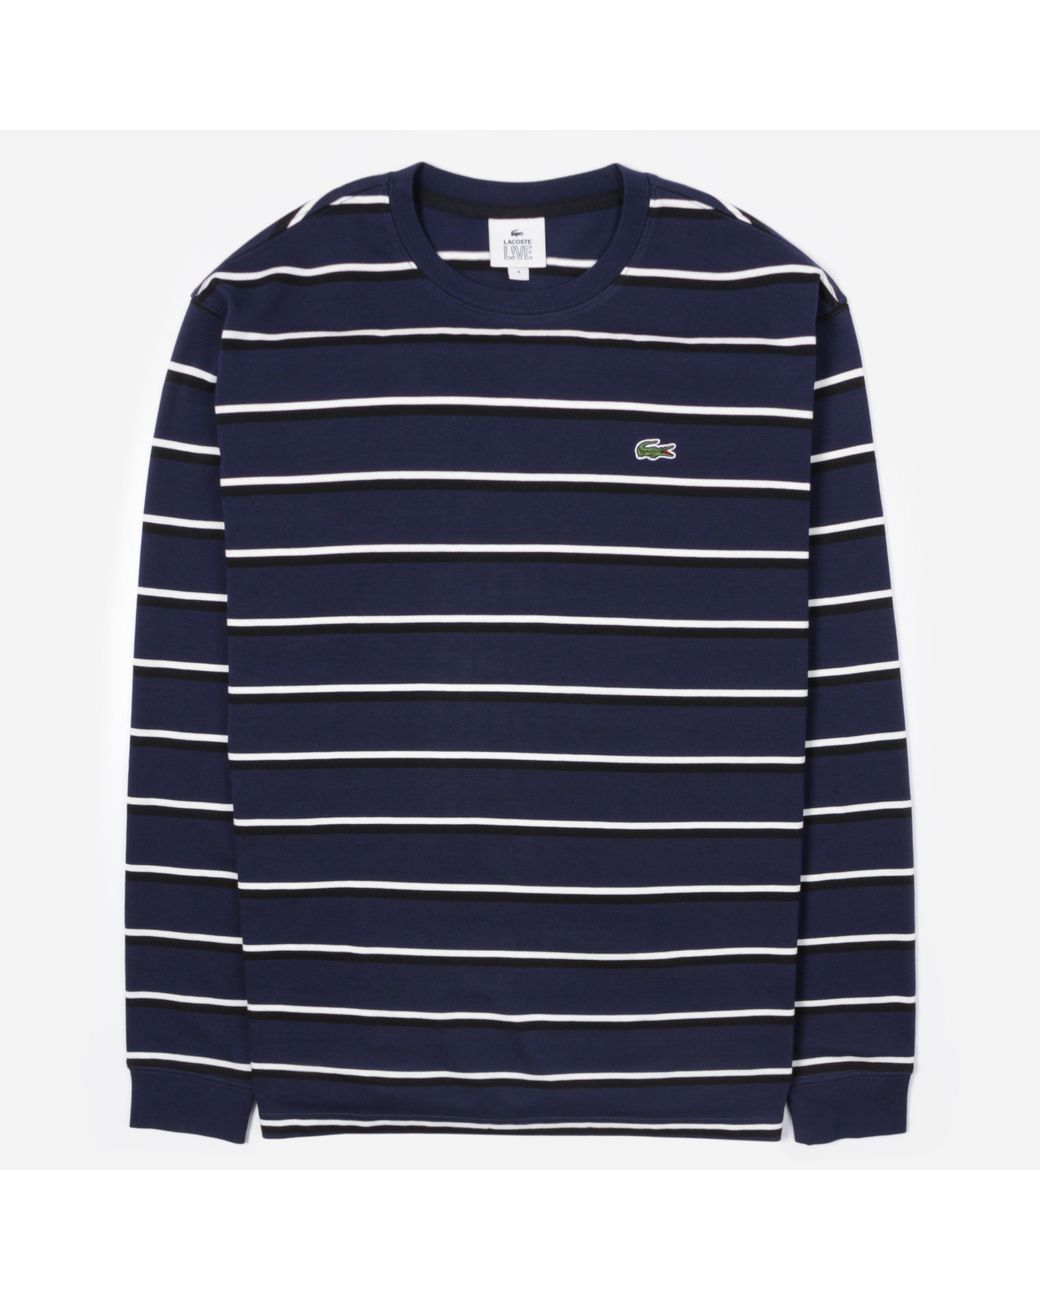 Lacoste Navy Blue Long Sleeved T-Shirt